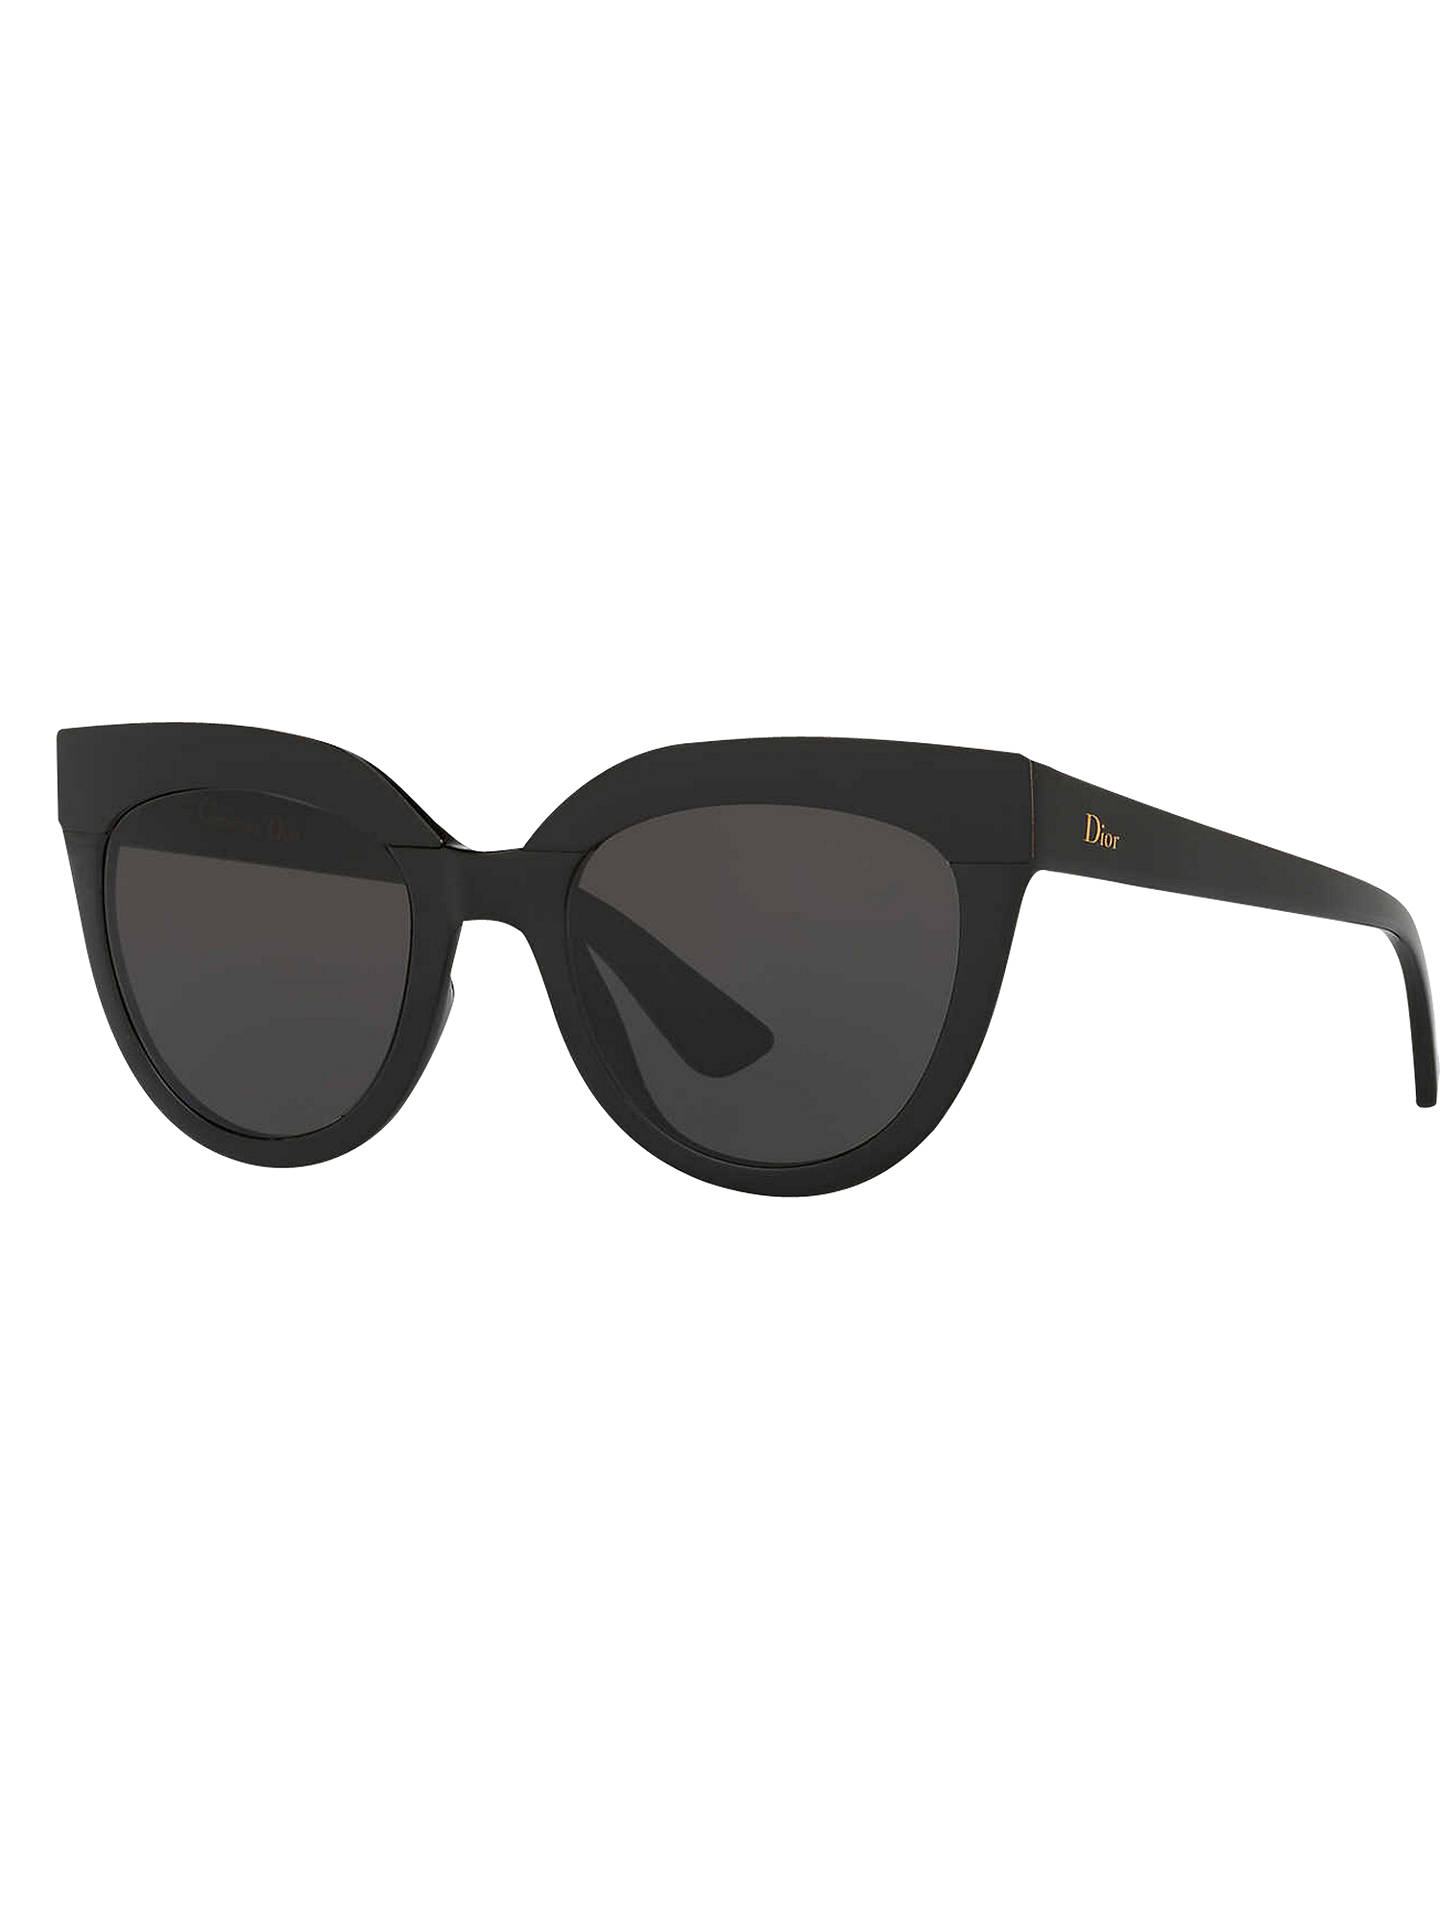 0b0b4f1492 Buy Dior DiorSoft1 Cat s Eye Sunglasses